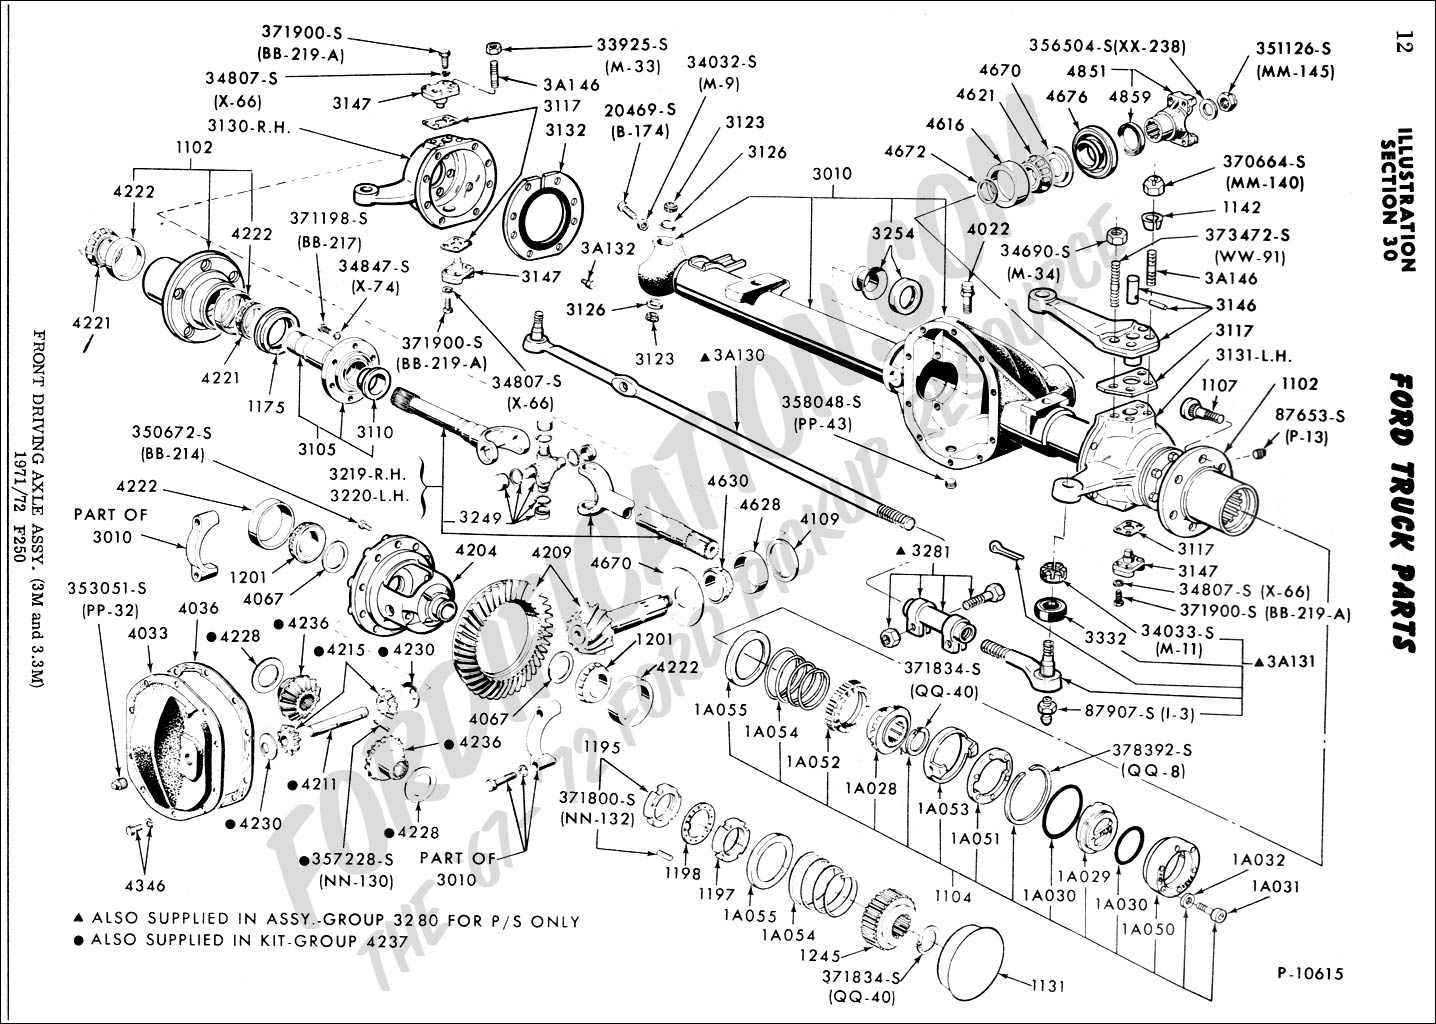 2004 Ford F350 4 Wheel Drive Wiring Diagram Will Be 1999 Trailer 2000 F250 Super Duty 4x4 Front Axle With 1996 F 350 1995